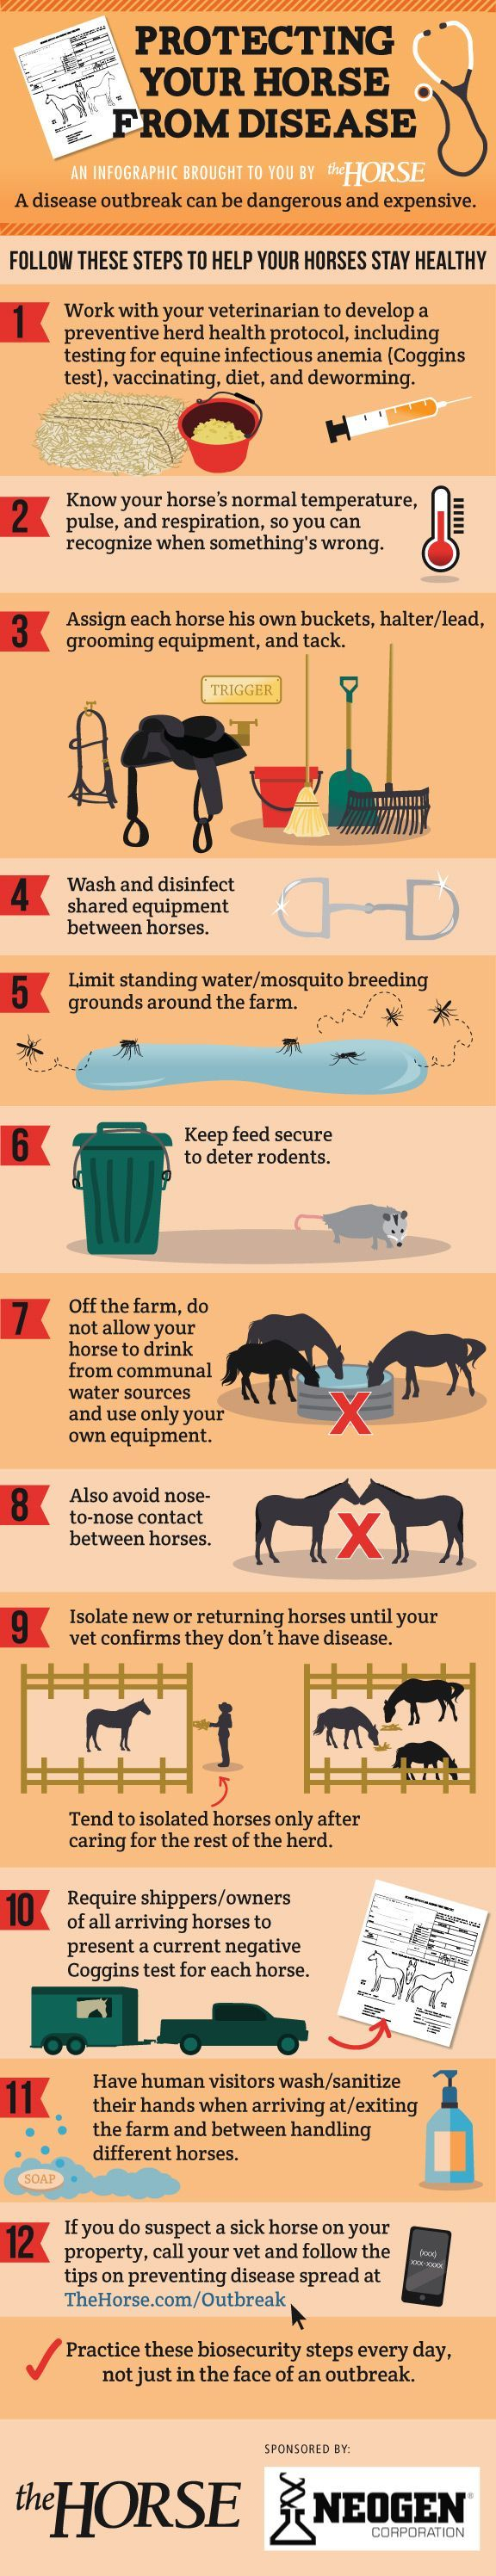 Preventative medicine is your first line of defense #understandingdisease #equine #infographic